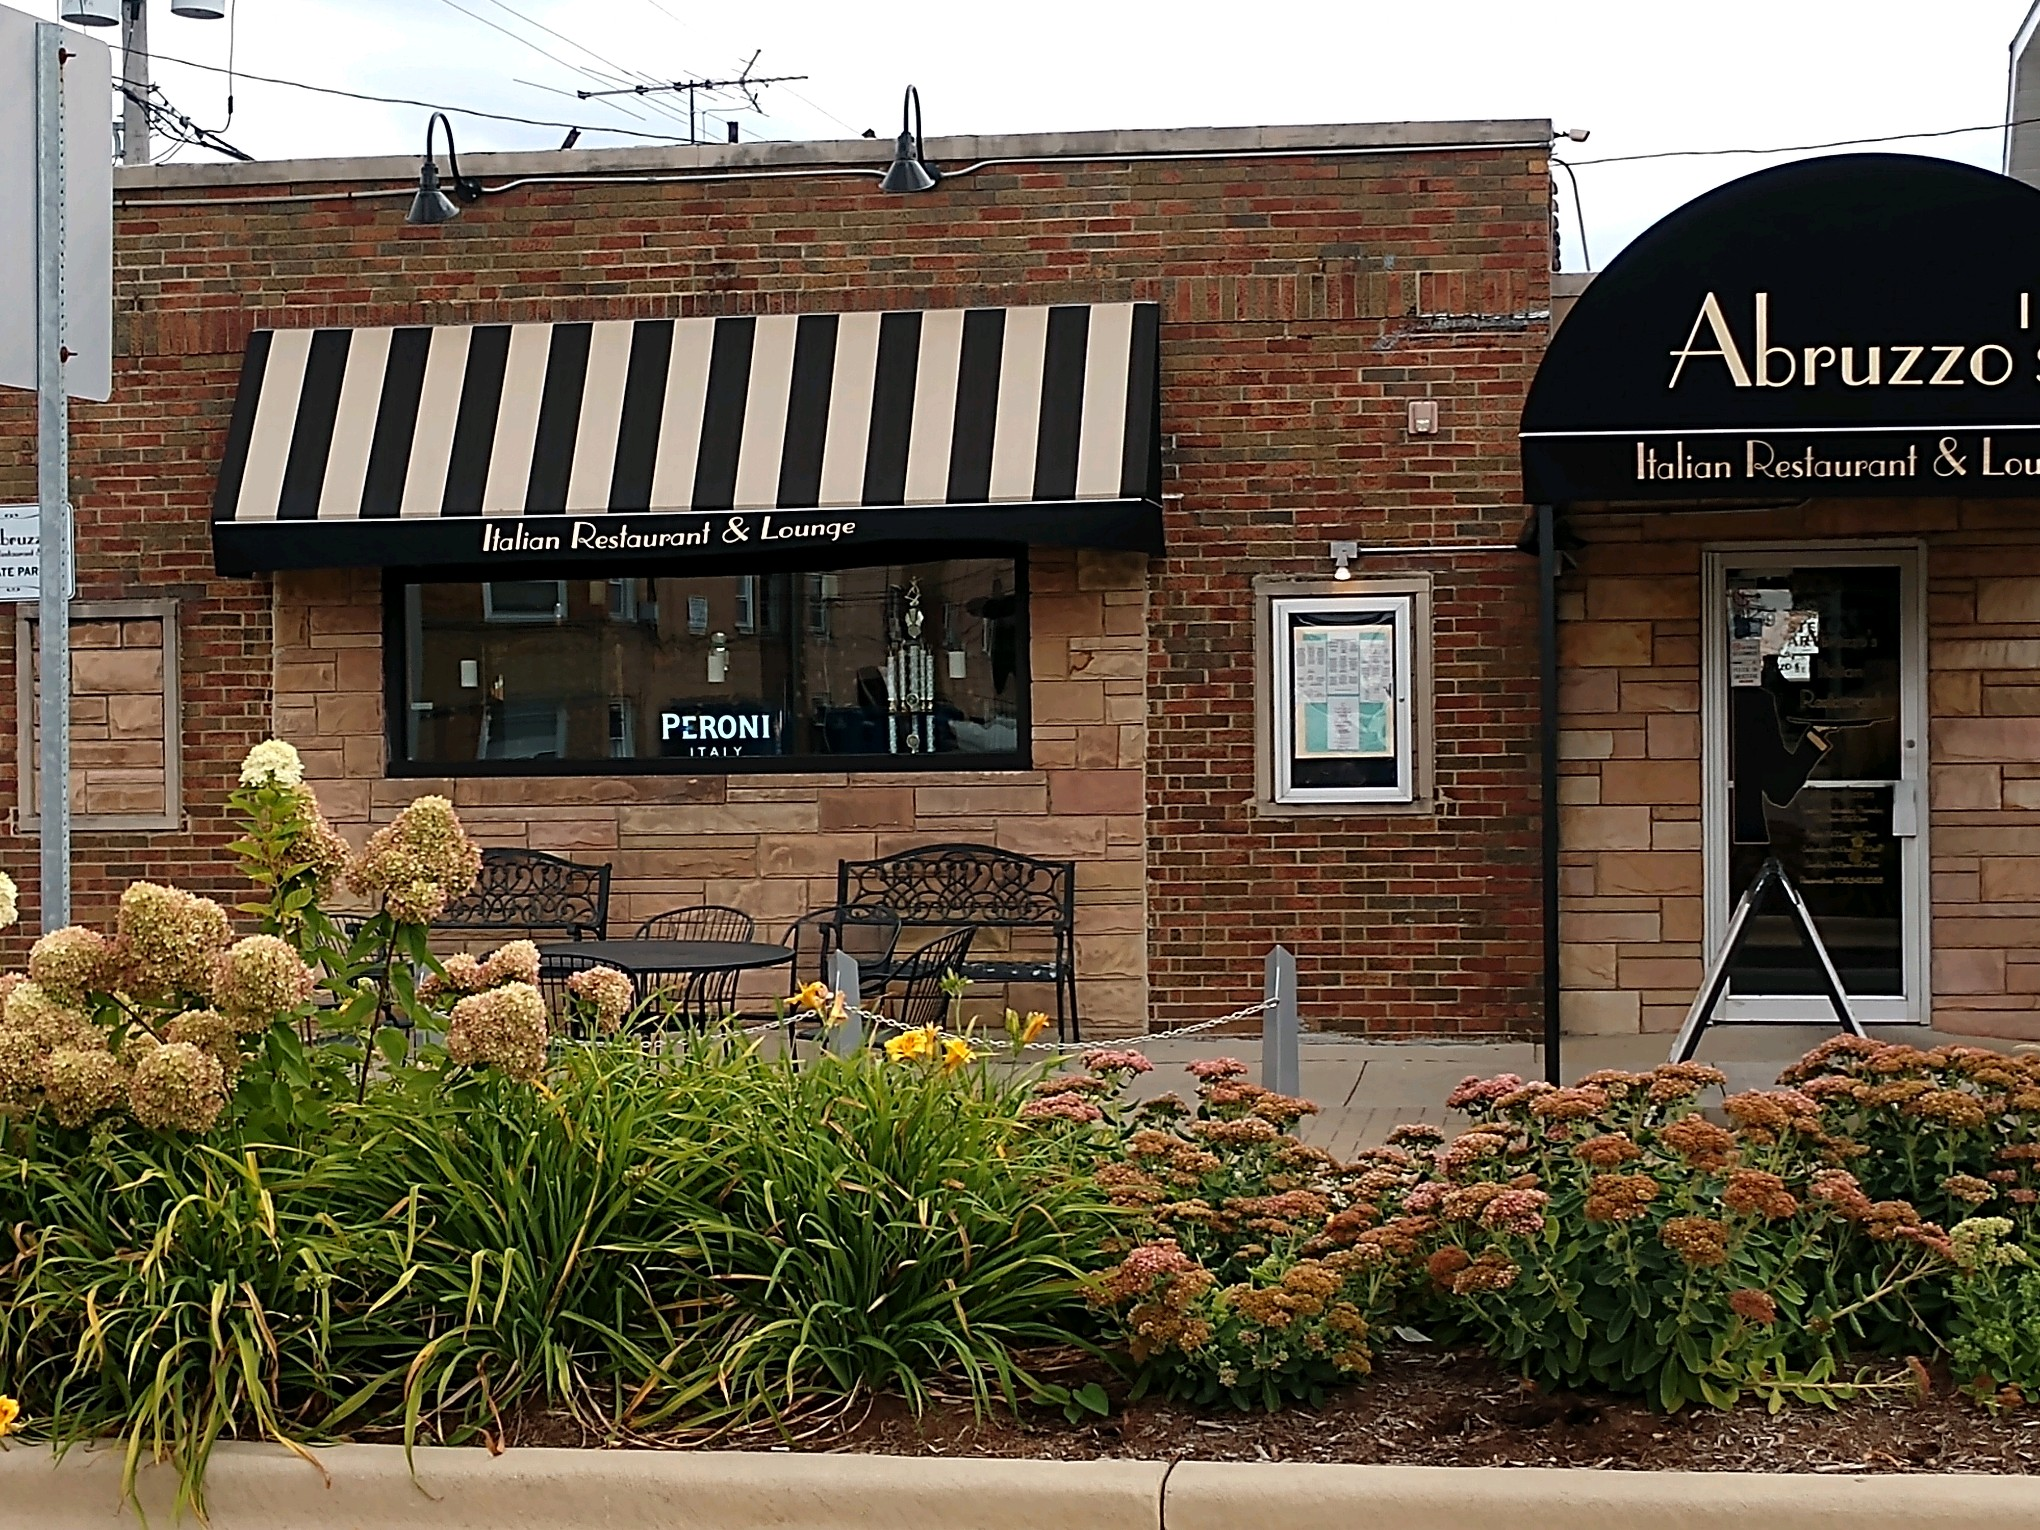 Event Photos at Abruzzo's Italian Restaurant and Lounge